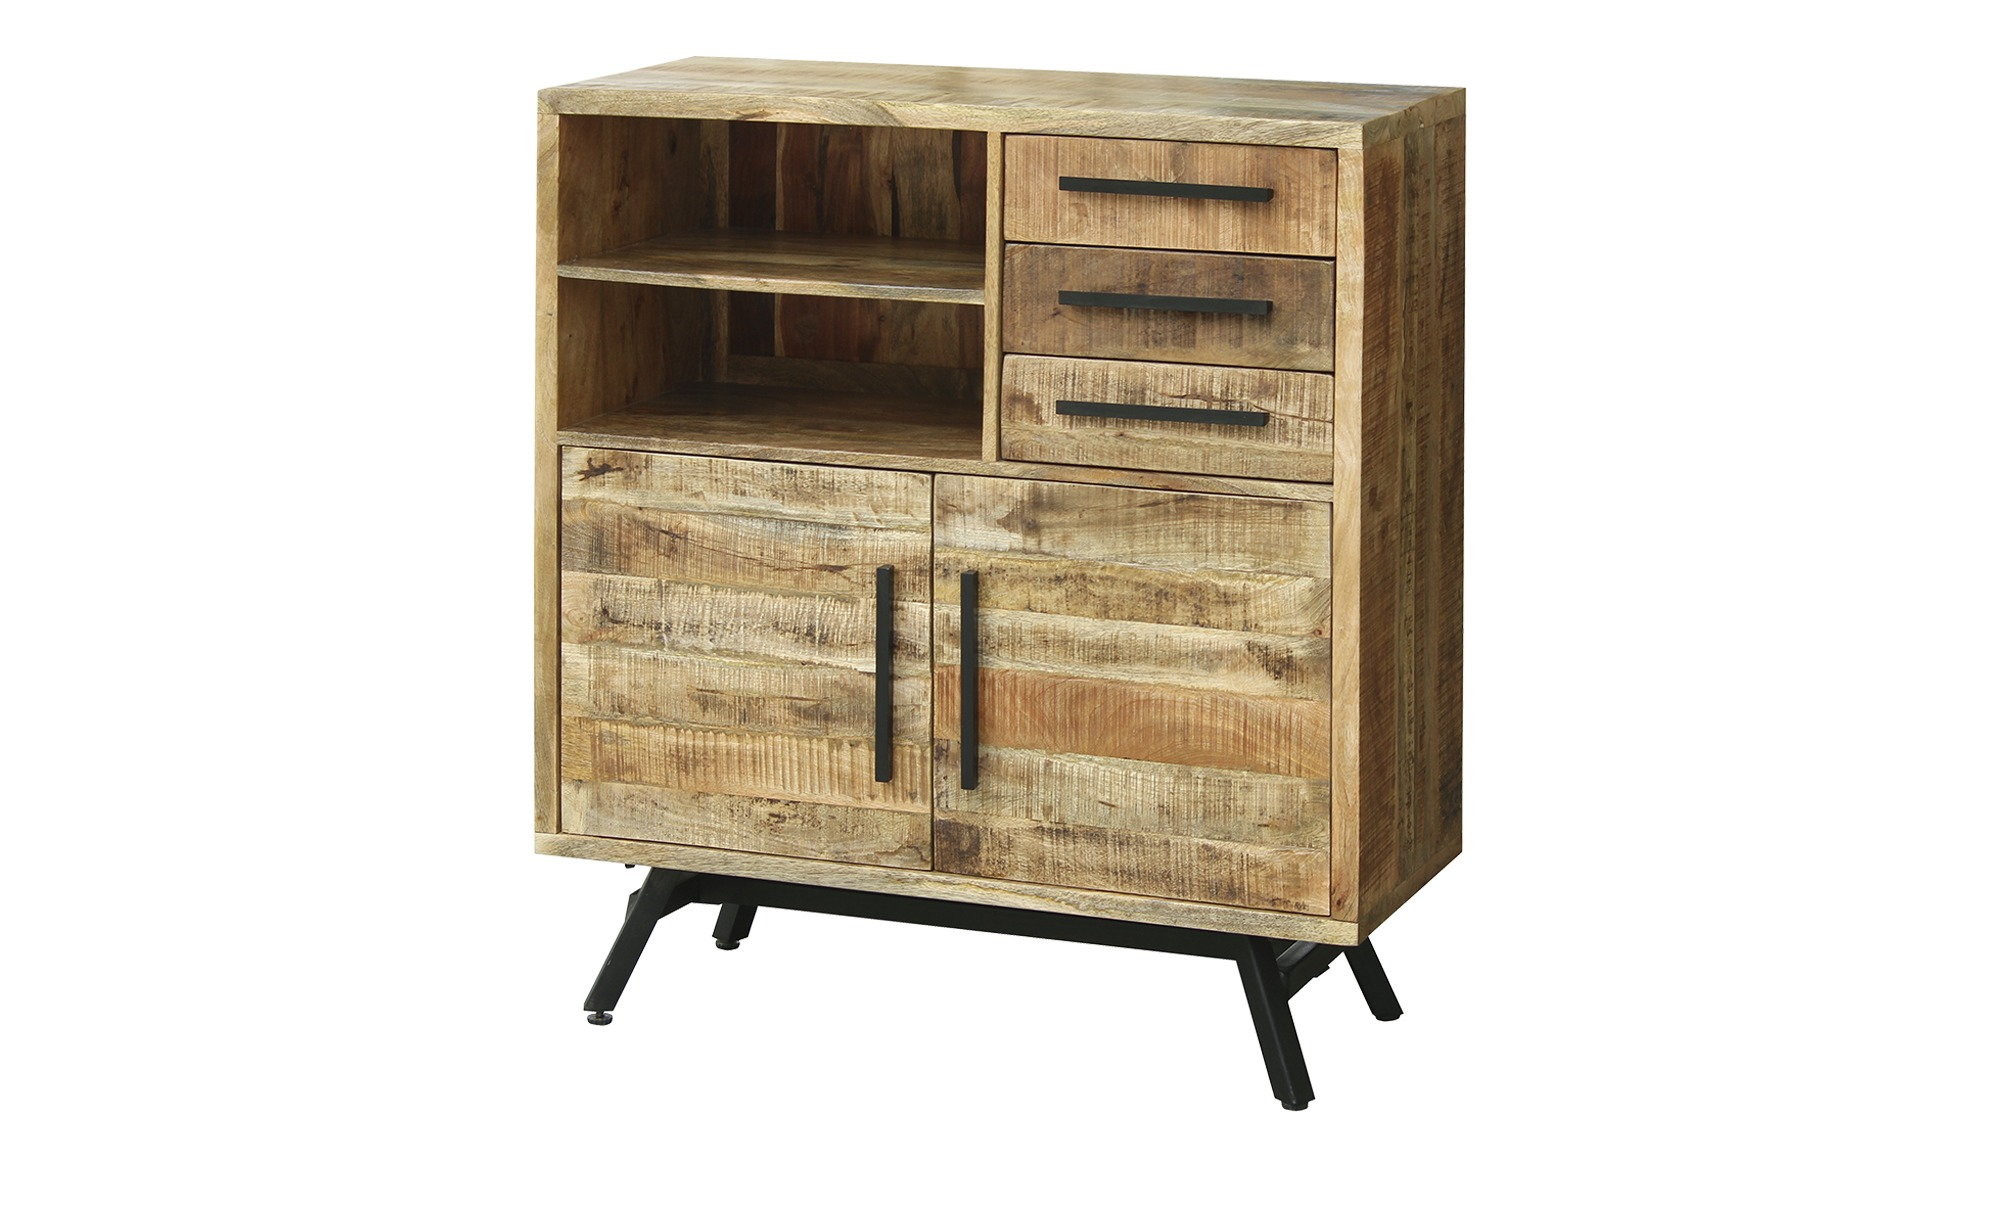 Highboard  Fullham ¦ holzfarben ¦ Maße (cm): B: 100 H: 108 T: 40 Kommoden & Sideboards > Highboards - Höffner